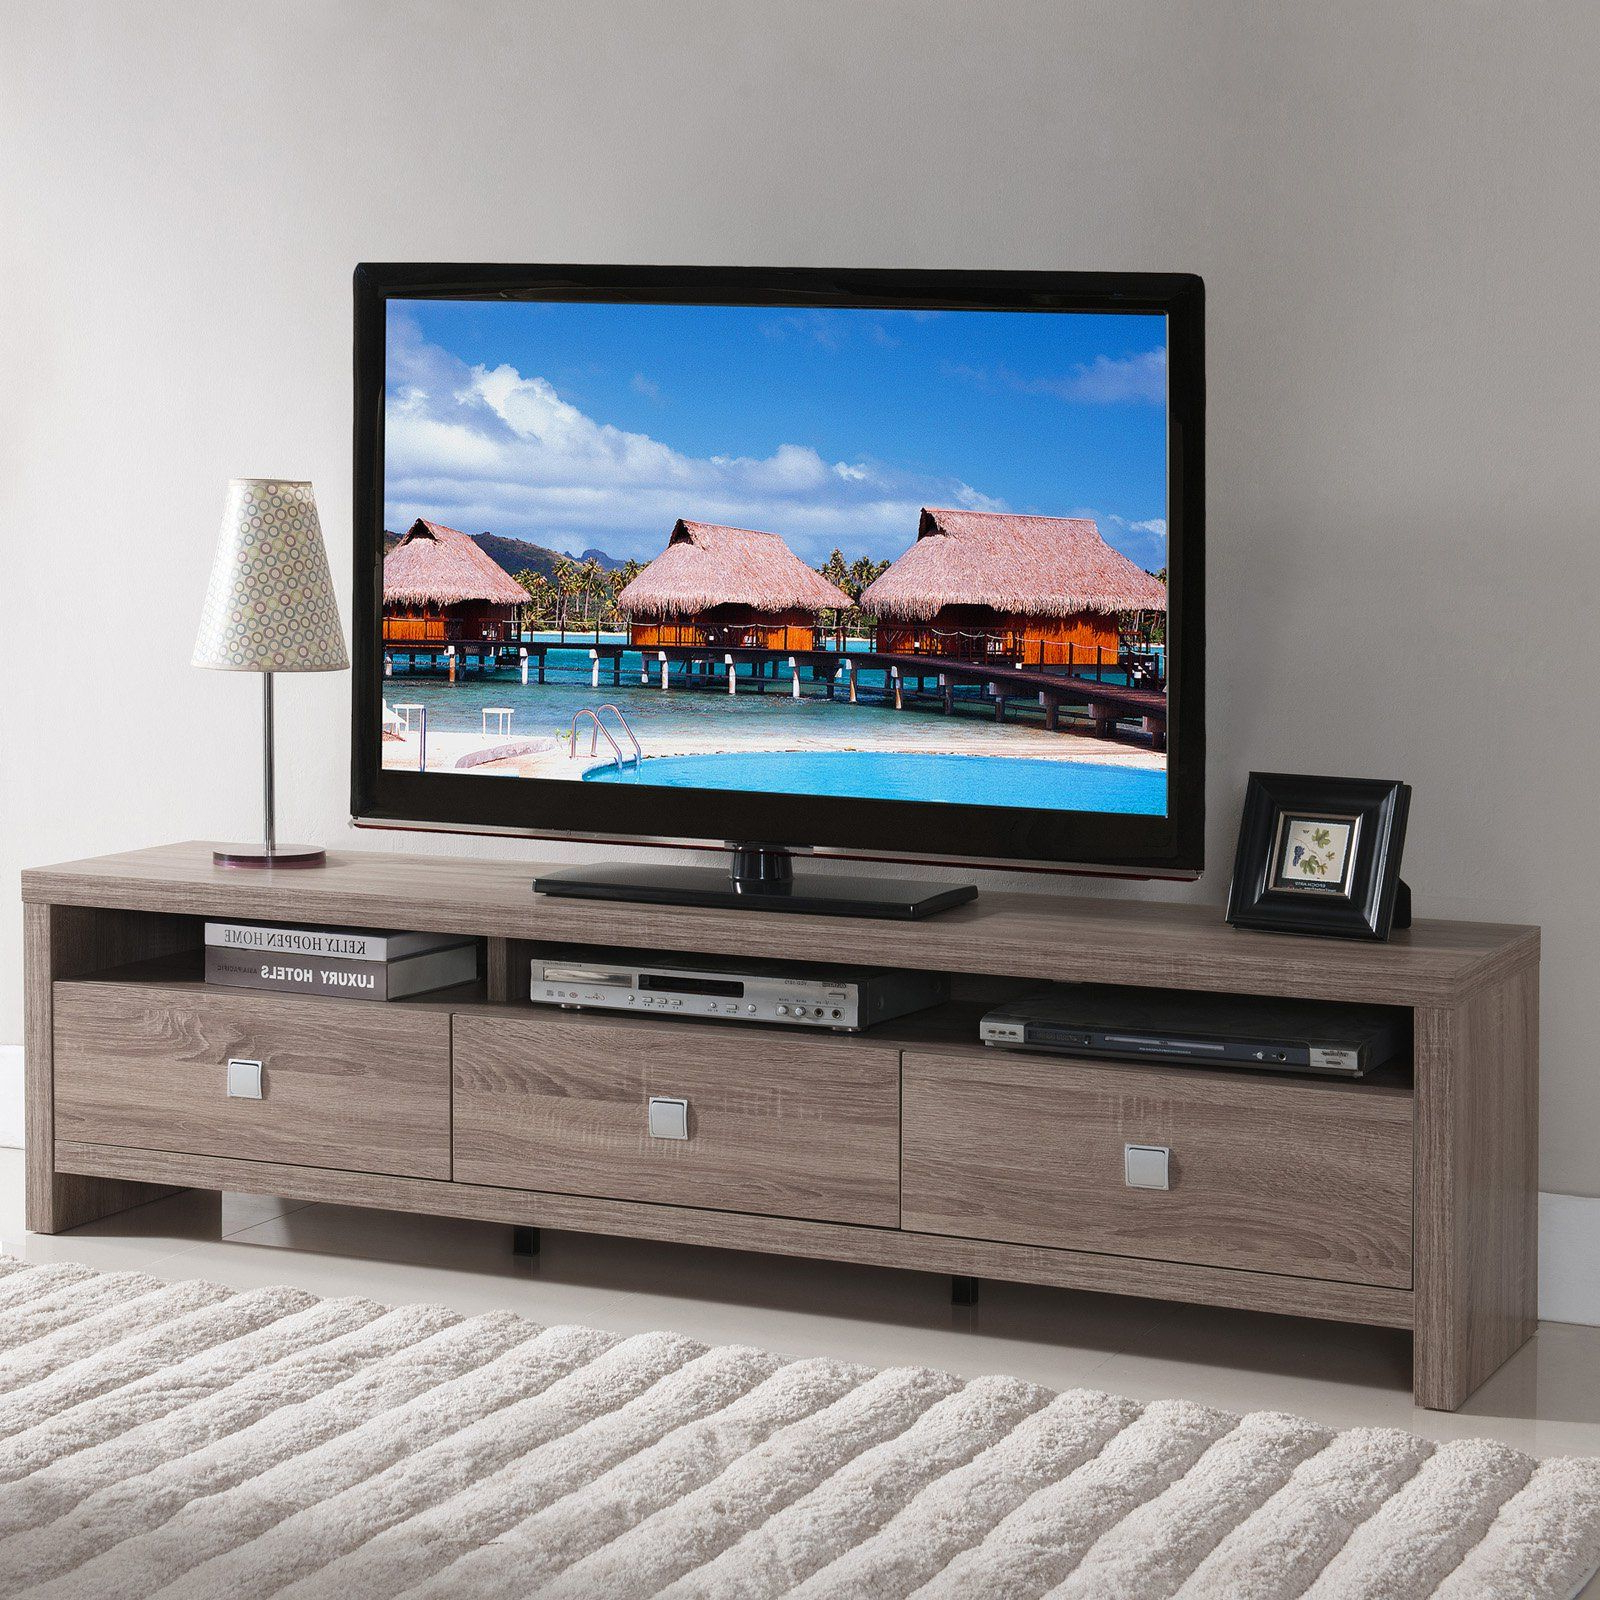 Furniture Of America Contemporary Tv Stand | From Hayneedle Inside Kenzie 72 Inch Open Display Tv Stands (View 15 of 20)